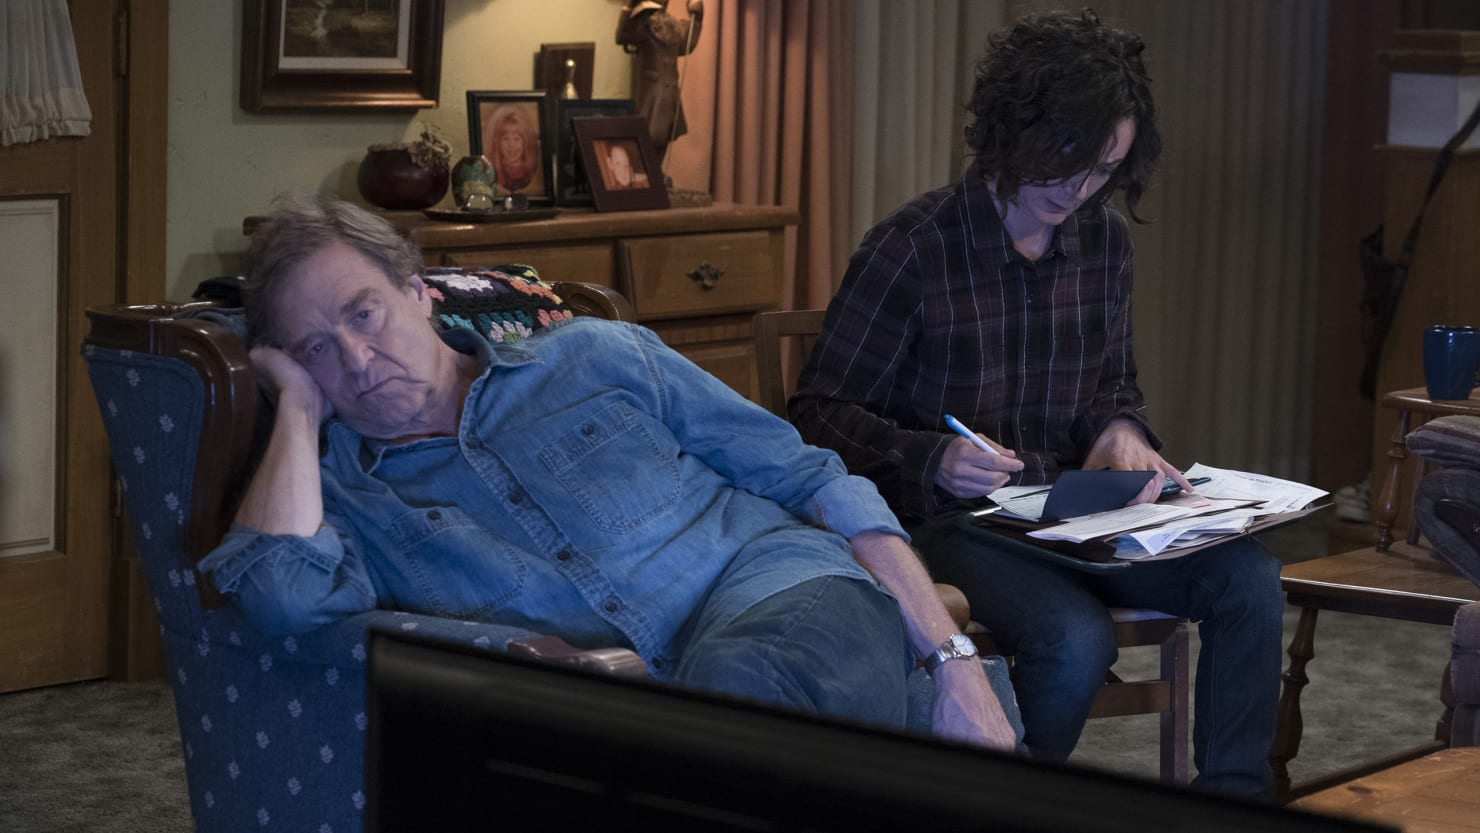 Roseanne Dies of an Opioid Overdose in 'The Conners.' That's the Wrong Move.